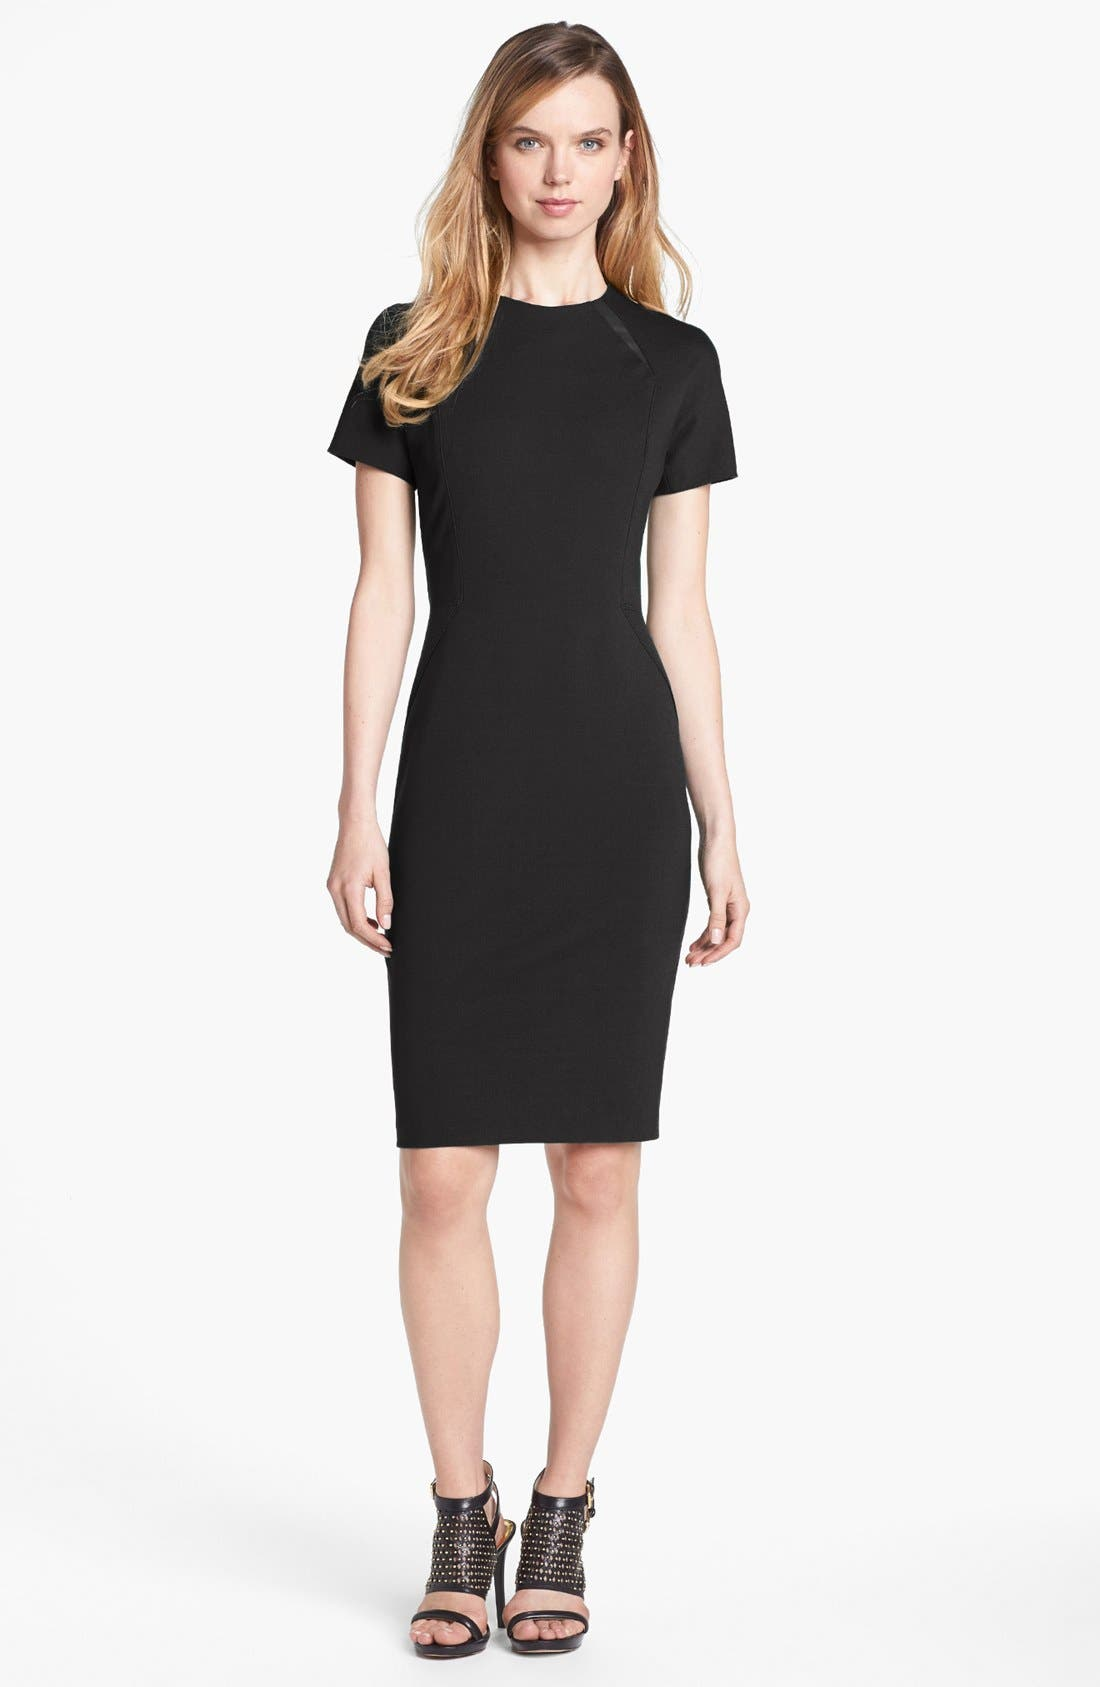 Alternate Image 1 Selected - Vince Camuto Faux Leather Detail Sheath Dress (Online Exclusive)